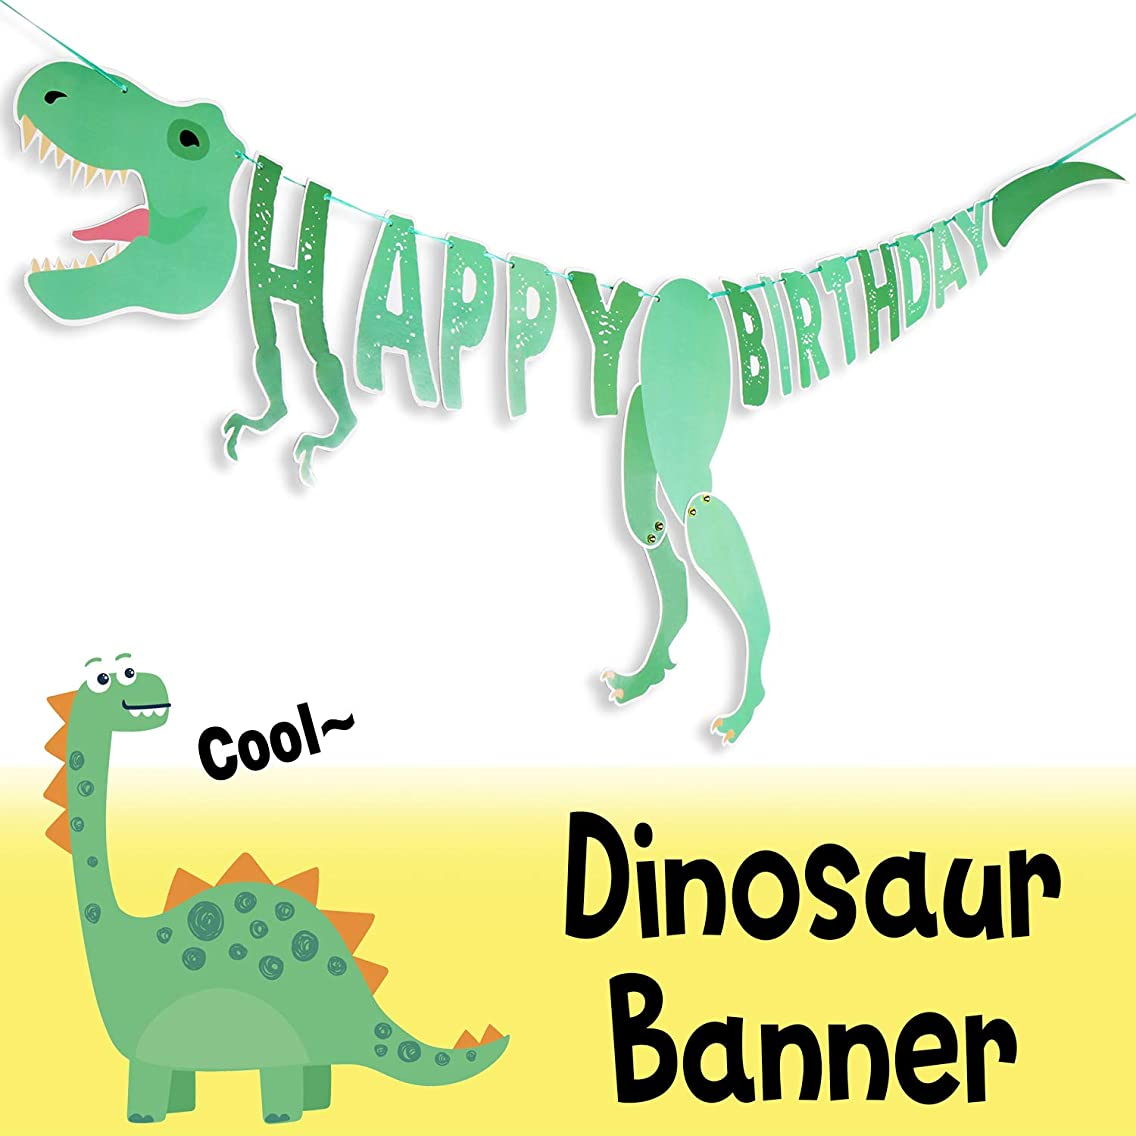 Dinosaur Party Happy Birthday Personalized DIY 3D Banner Sweet Baby Boy Girl Shower Baby First Birthday Kids Bday Photo Booth Party Decorations - Green